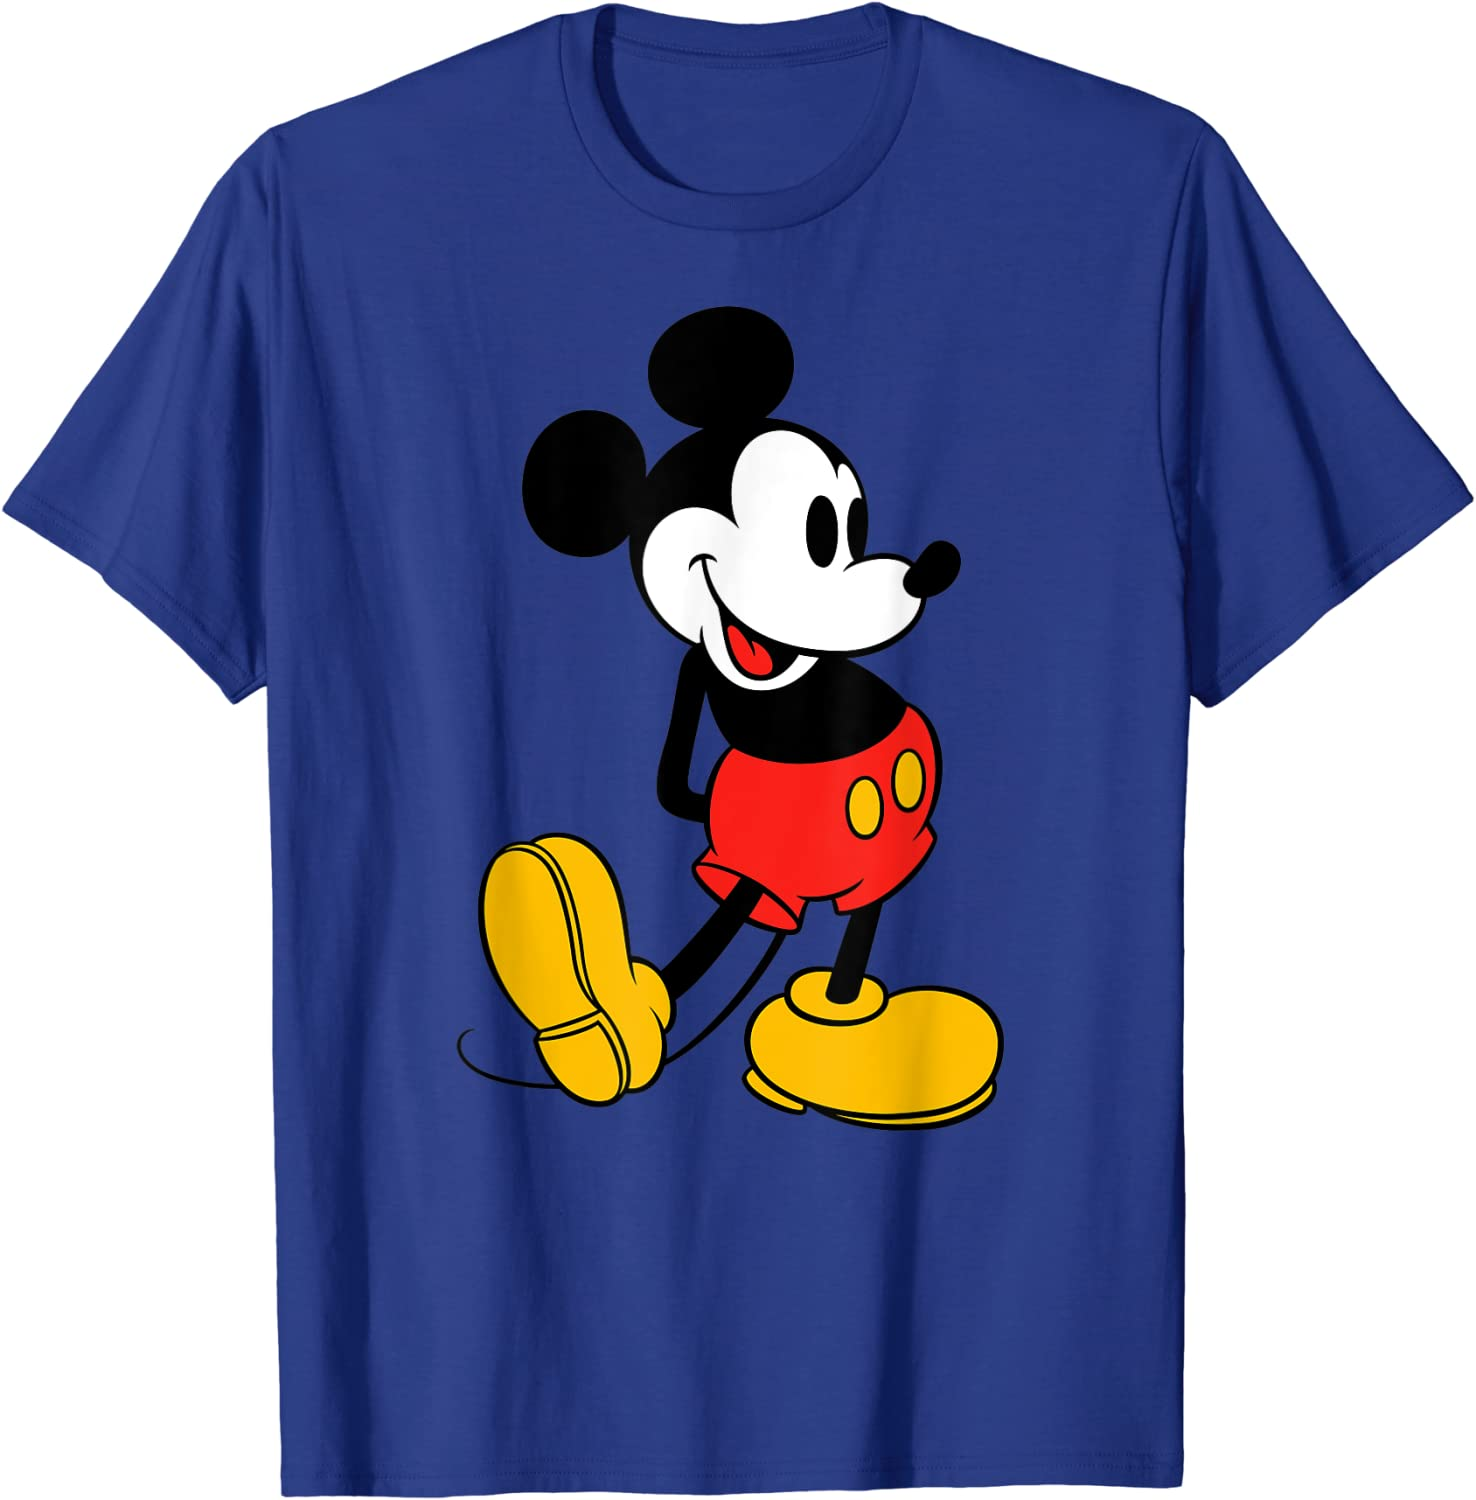 Disney Classic Mickey Mouse T-Shirt